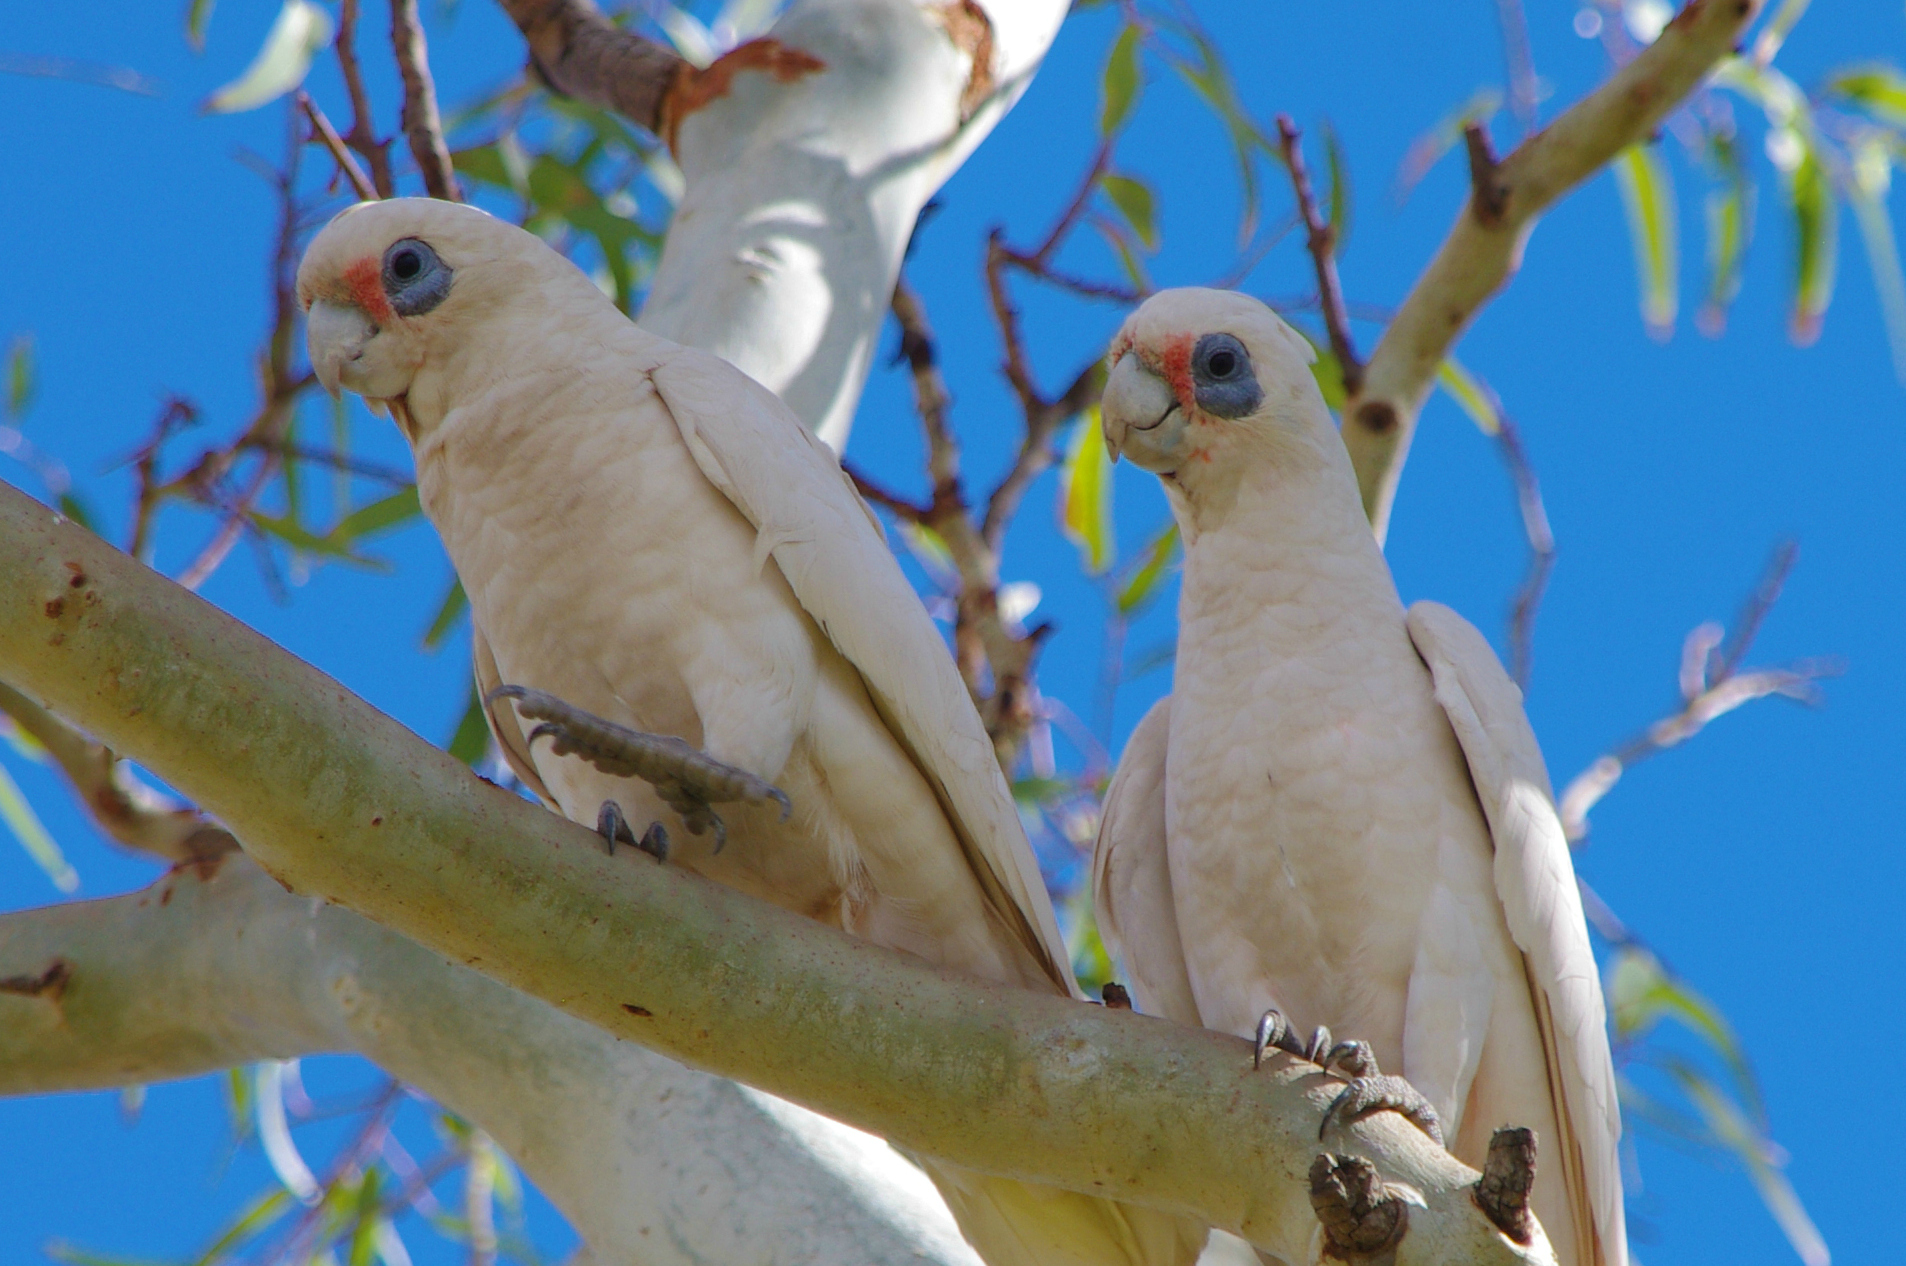 Community doubles down to manage Corellas